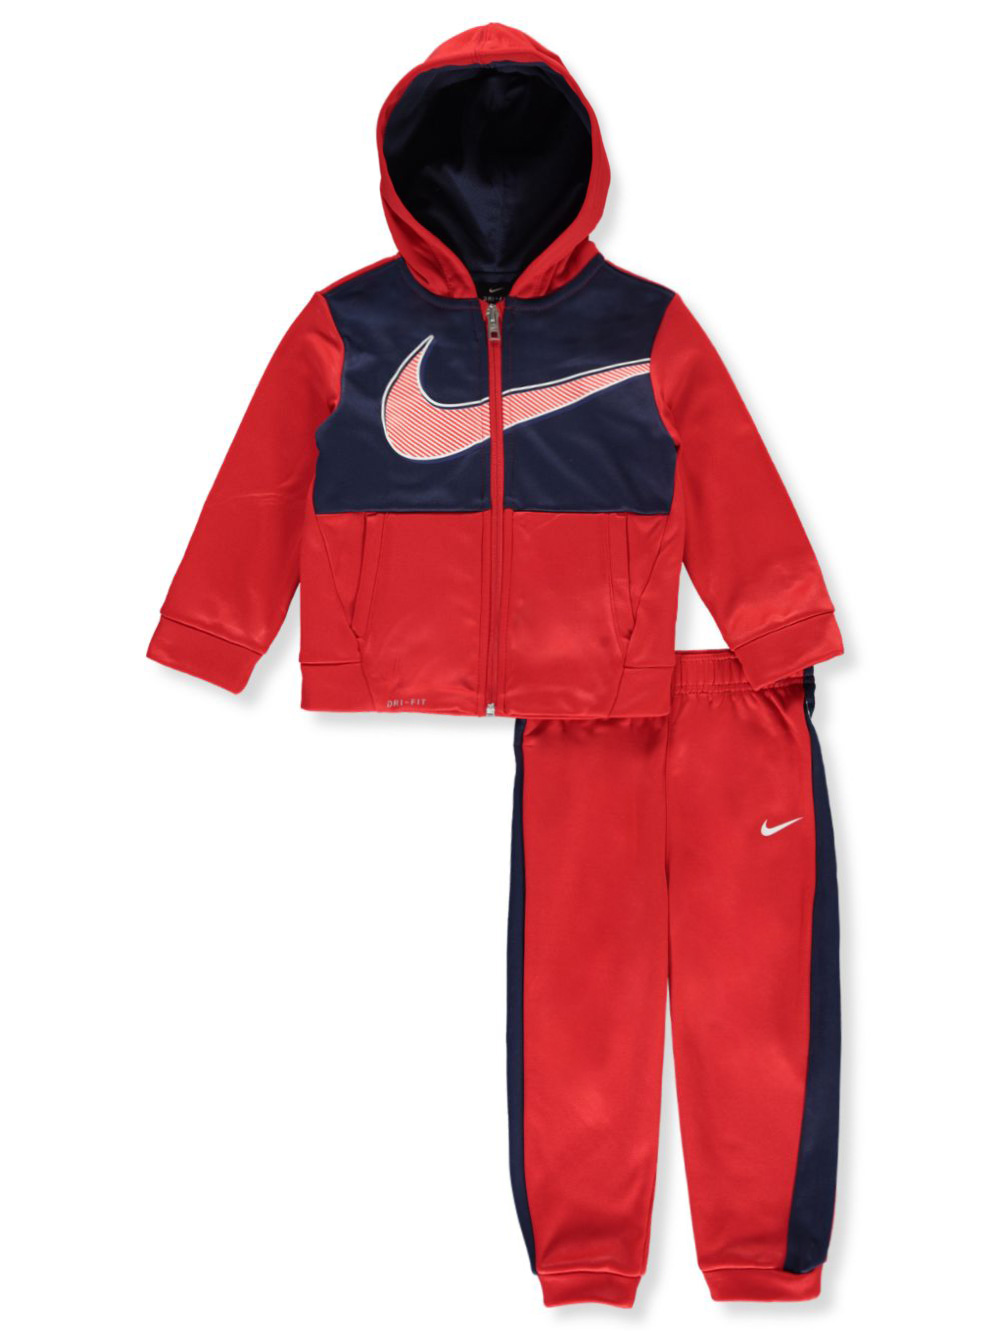 Active Sets Dri-FIt 2-Piece Tracksuit Outfit